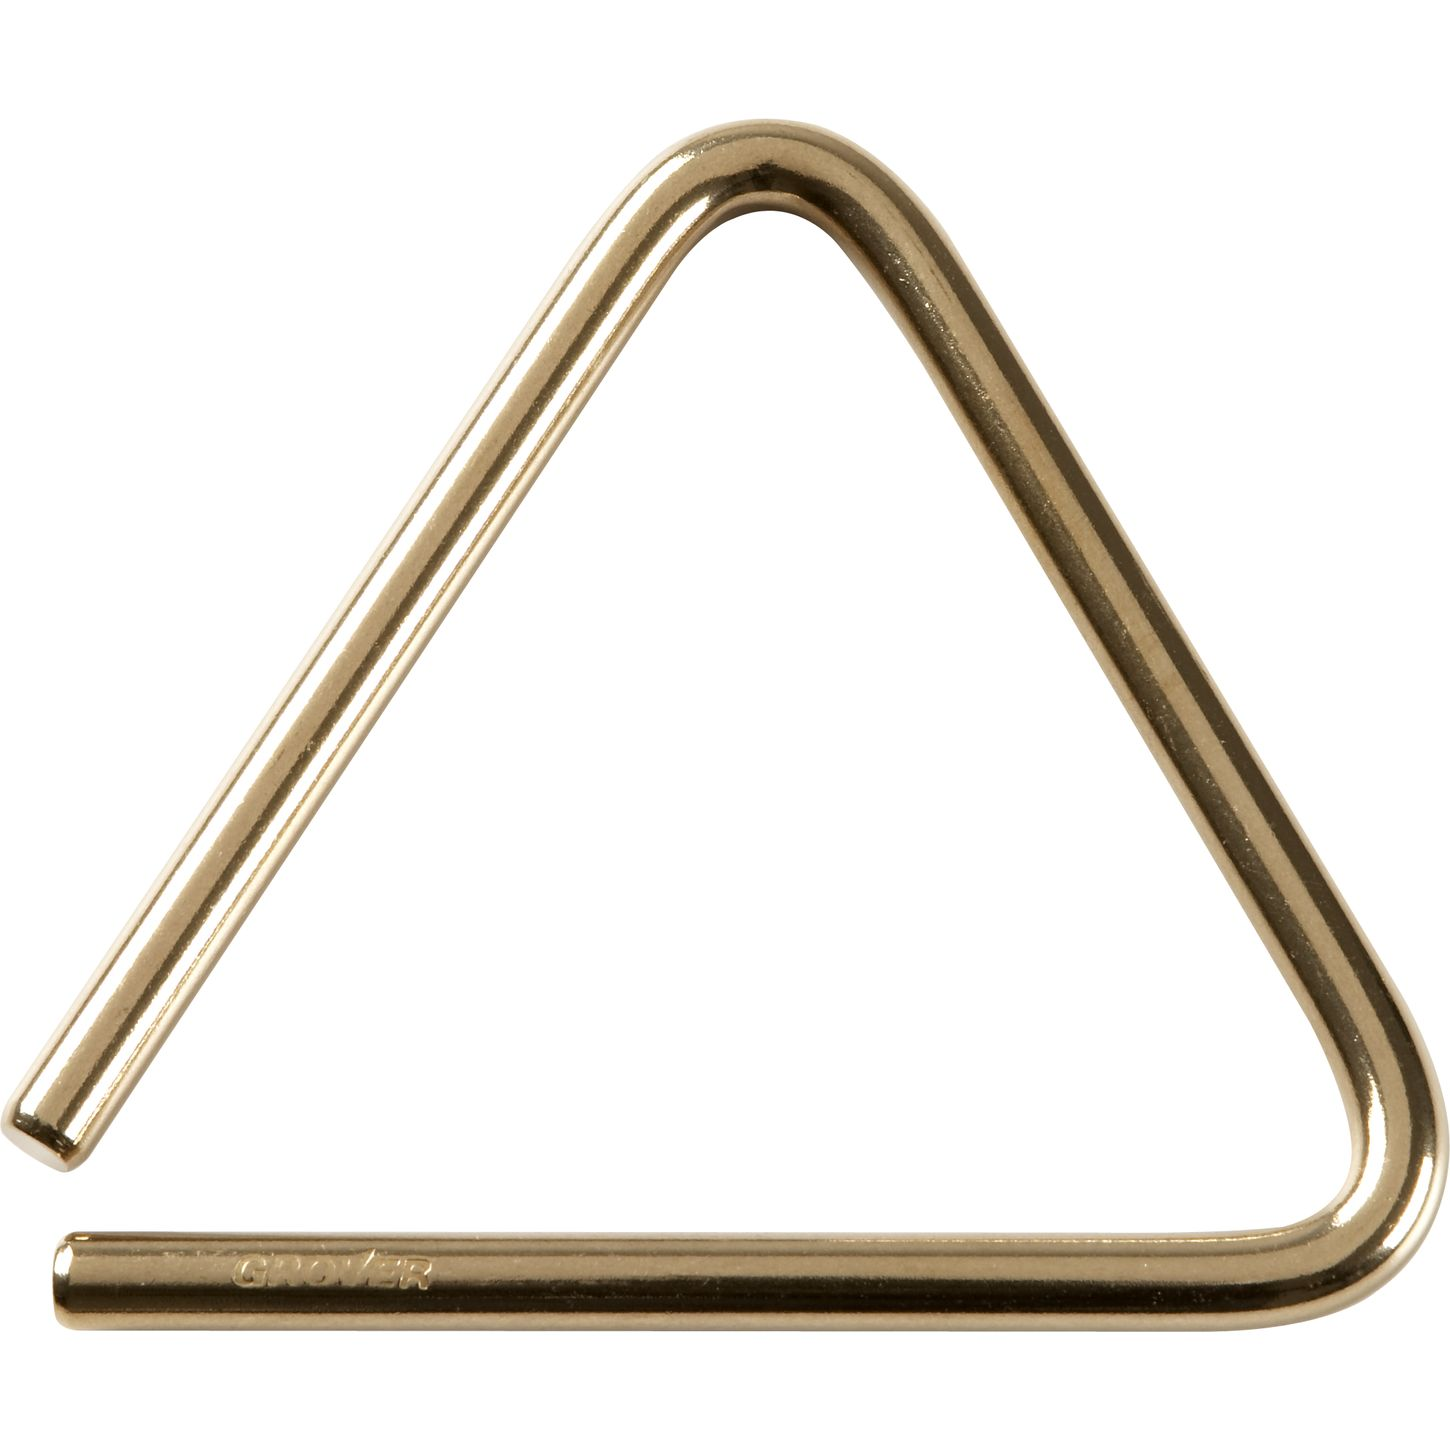 "Grover Pro 5"" Bronze Concert Triangle"